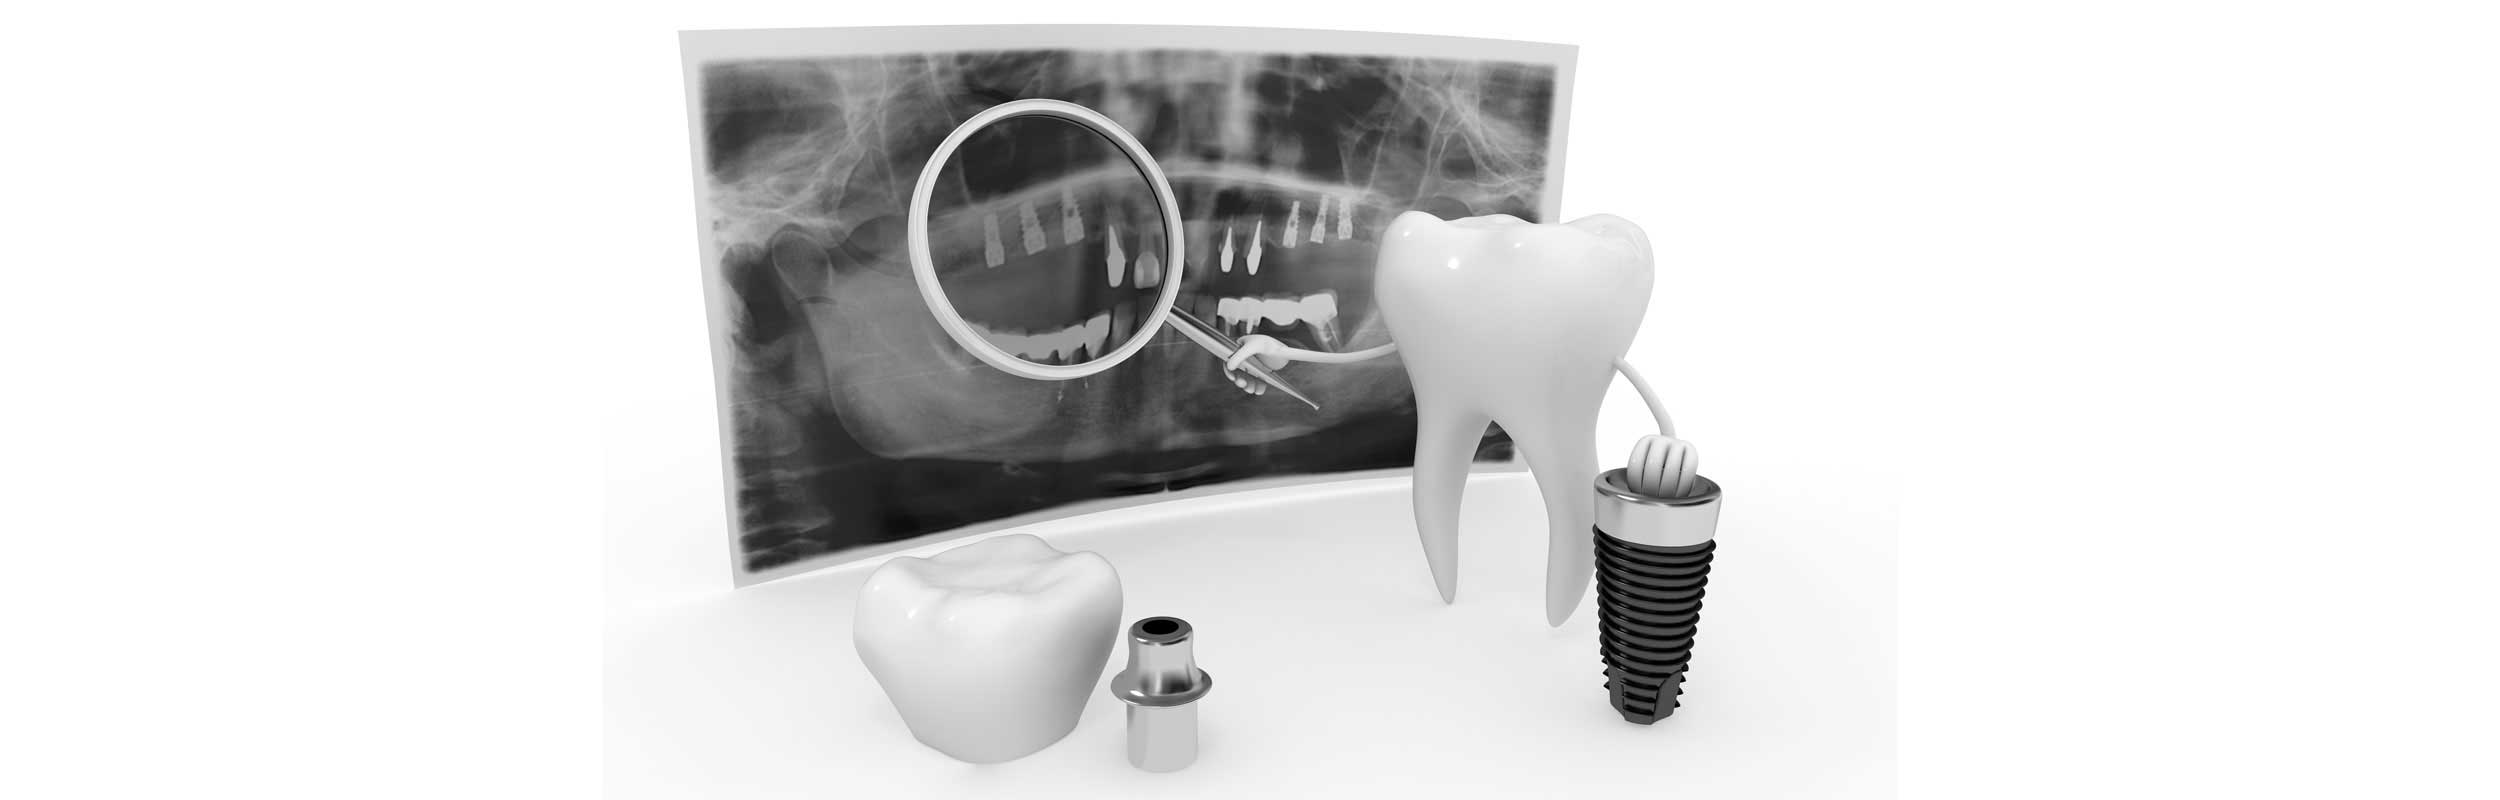 Dental Implant Experts - Belle Meade Dental - Nashville, TN